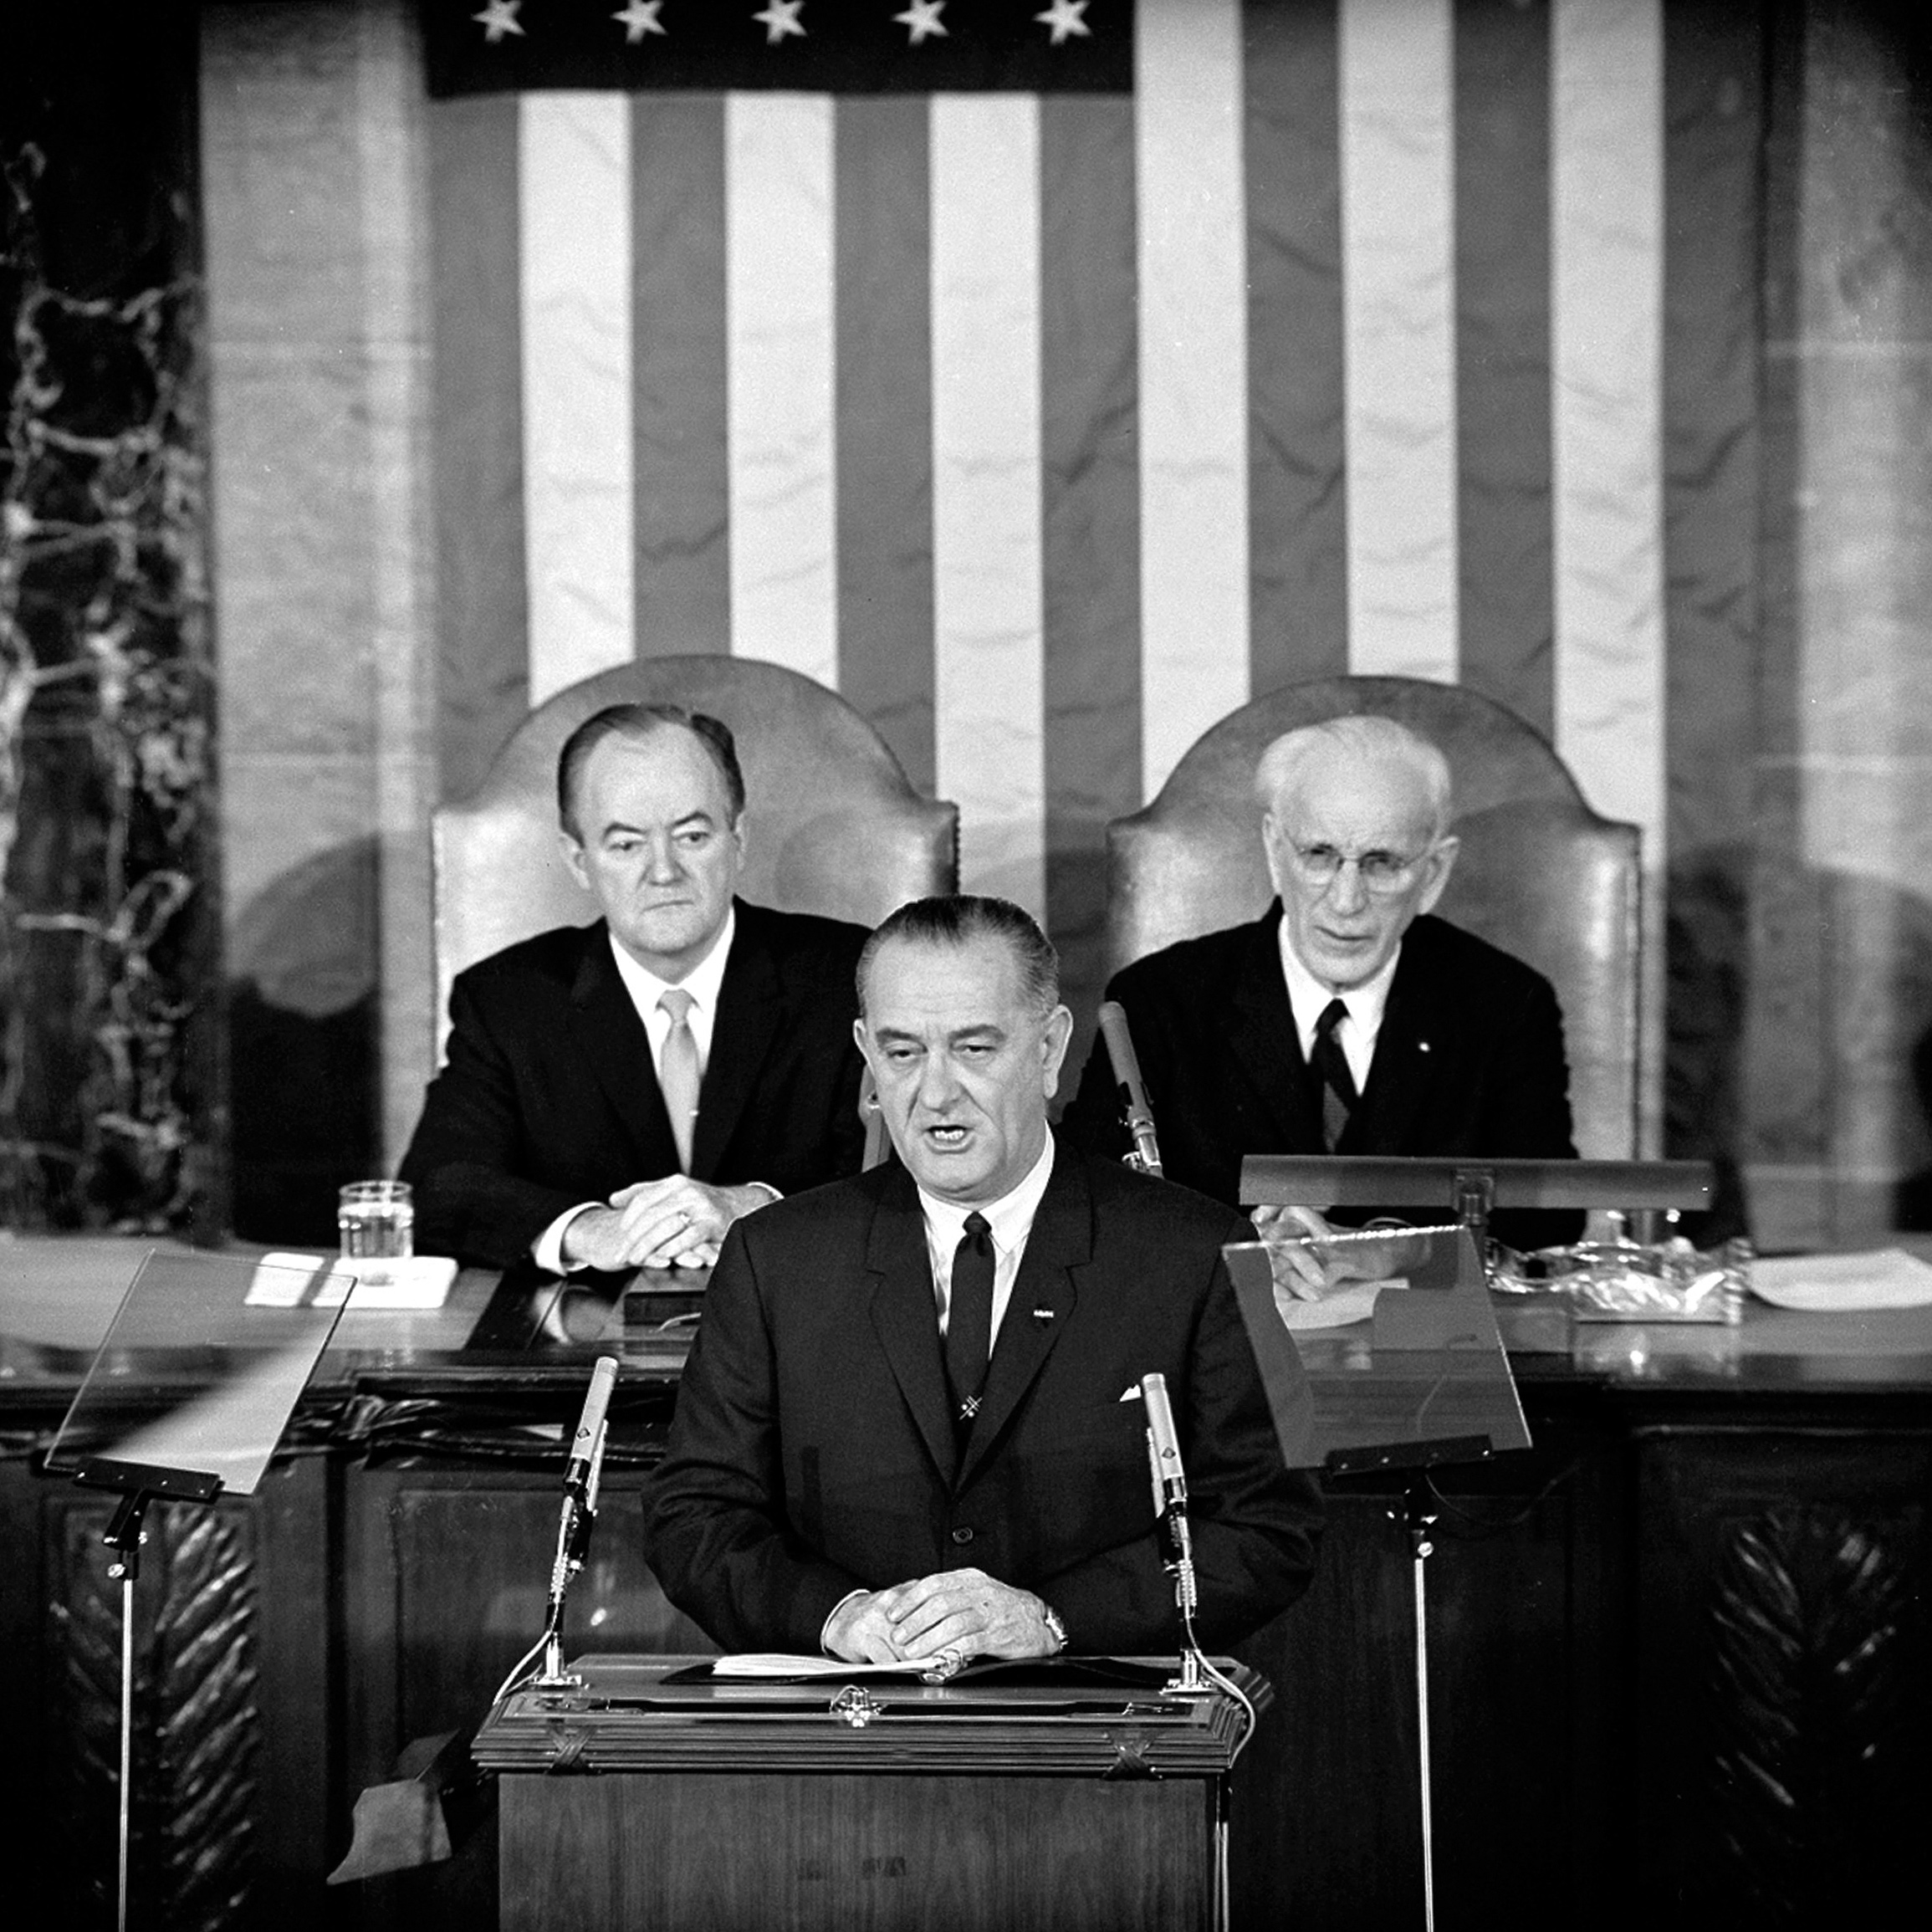 In this March 15, 1965 file photo, U.S. President Lyndon B. Johnson addresses a joint session of Congress in Washington where he urged the passing of the Voting Rights Act and spoke of his experience as a young teacher in a segregated, Mexican-Ameri...